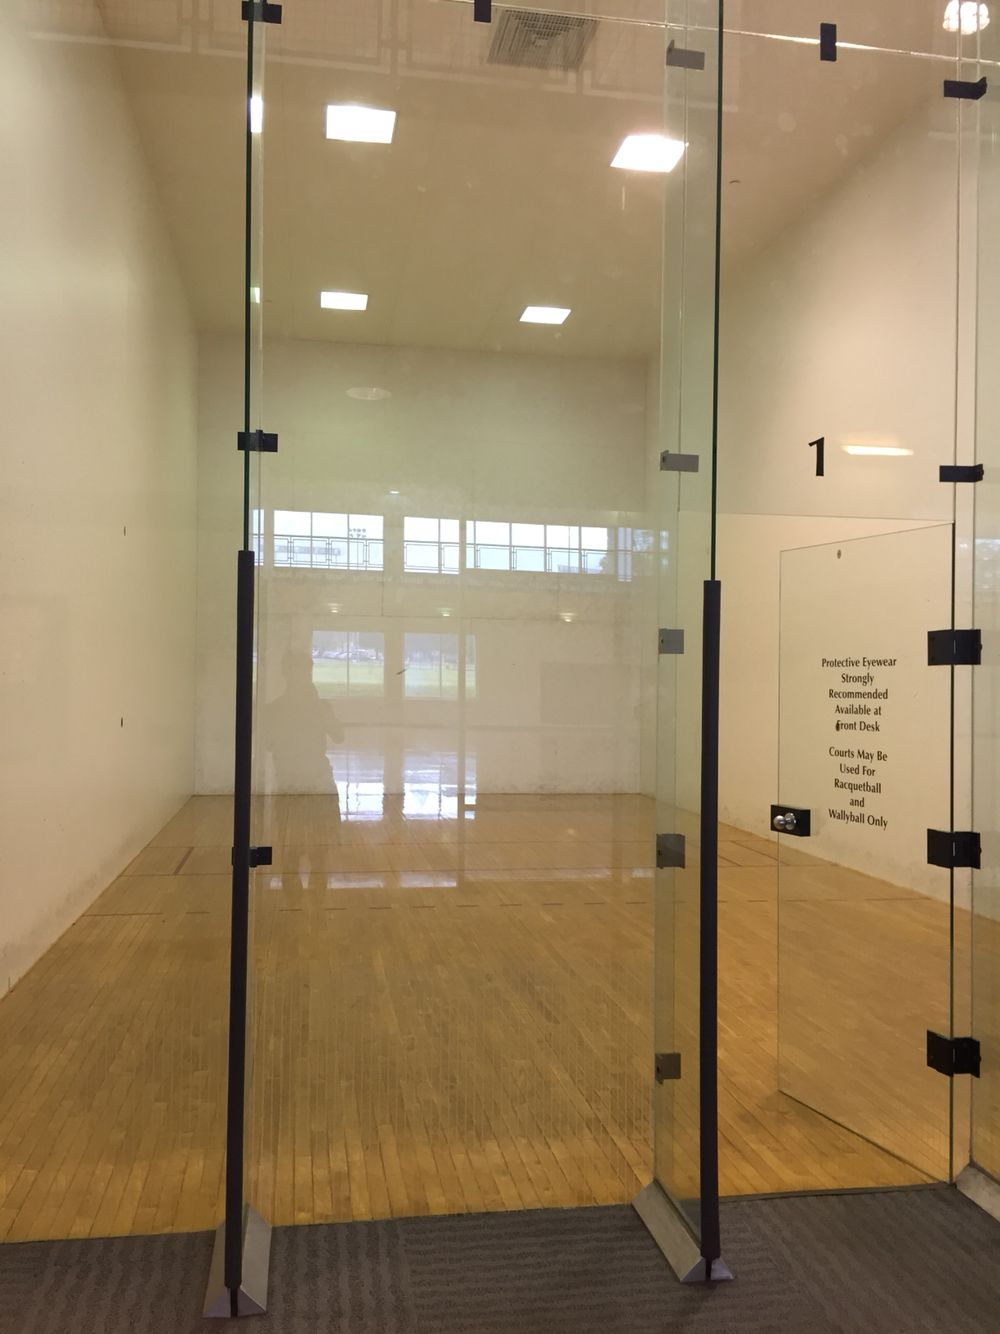 Here is a racquetball court at the jc people can also